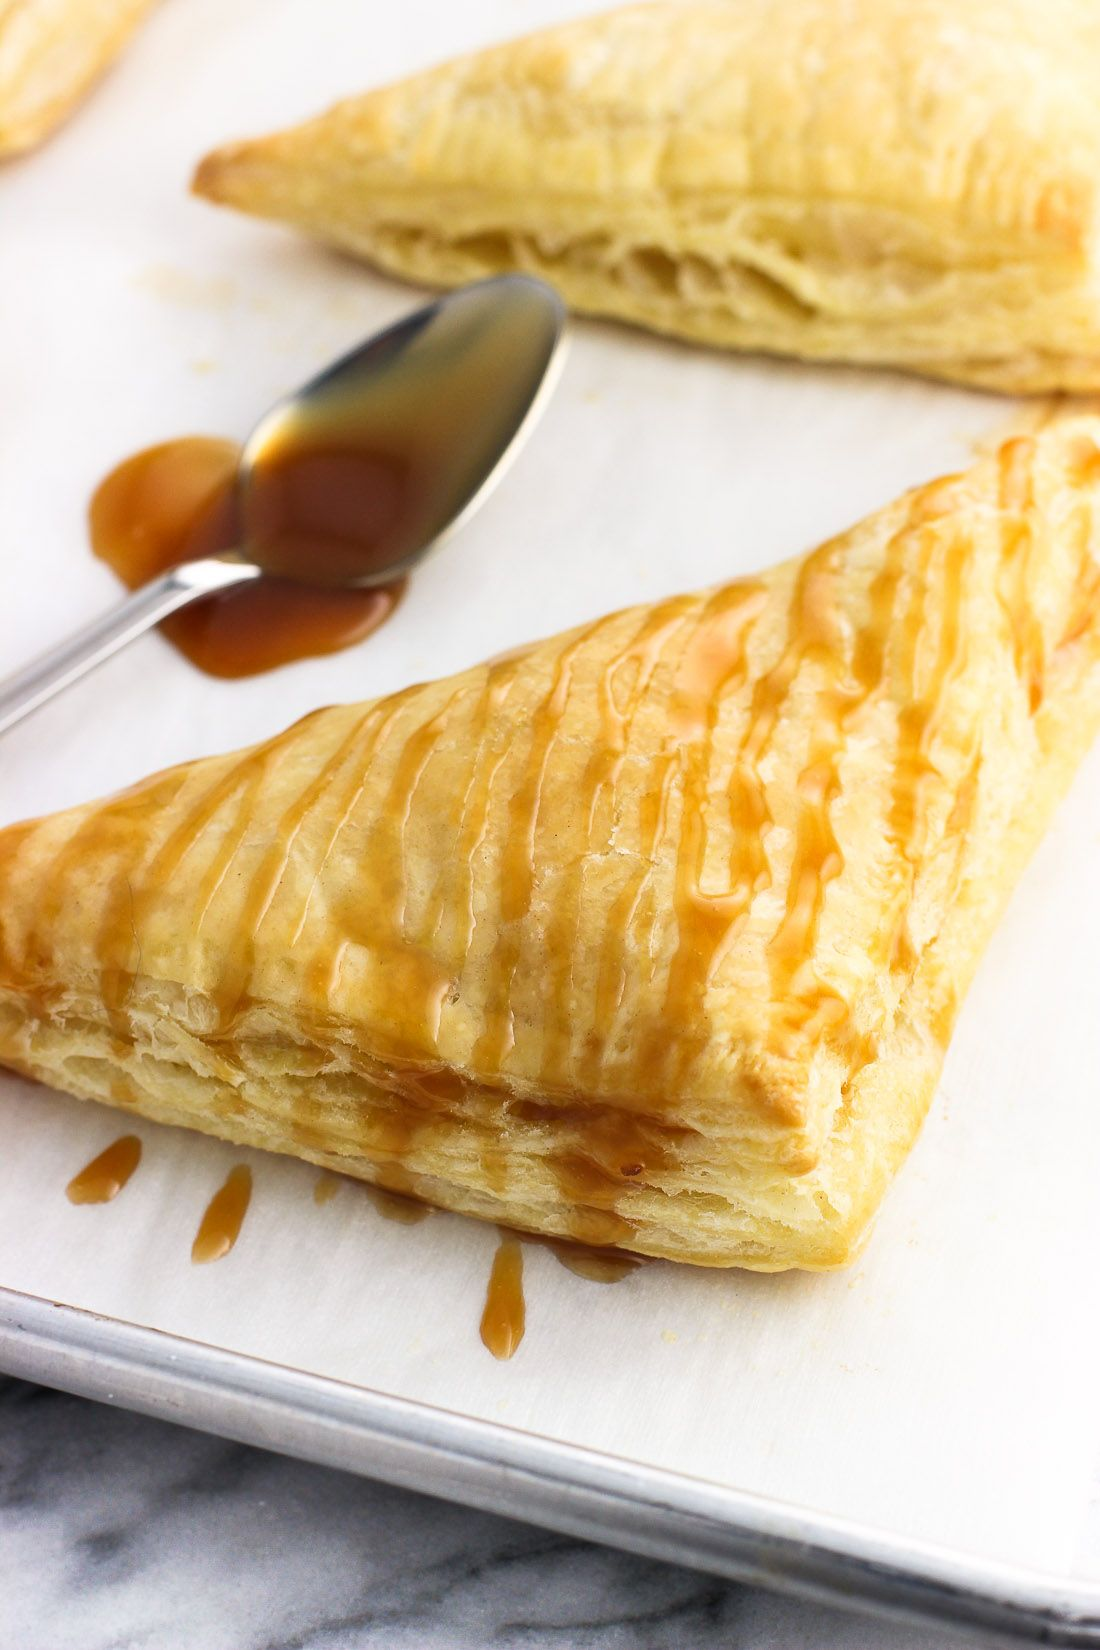 Patties made of puff pastry - fast, delicious, exquisite